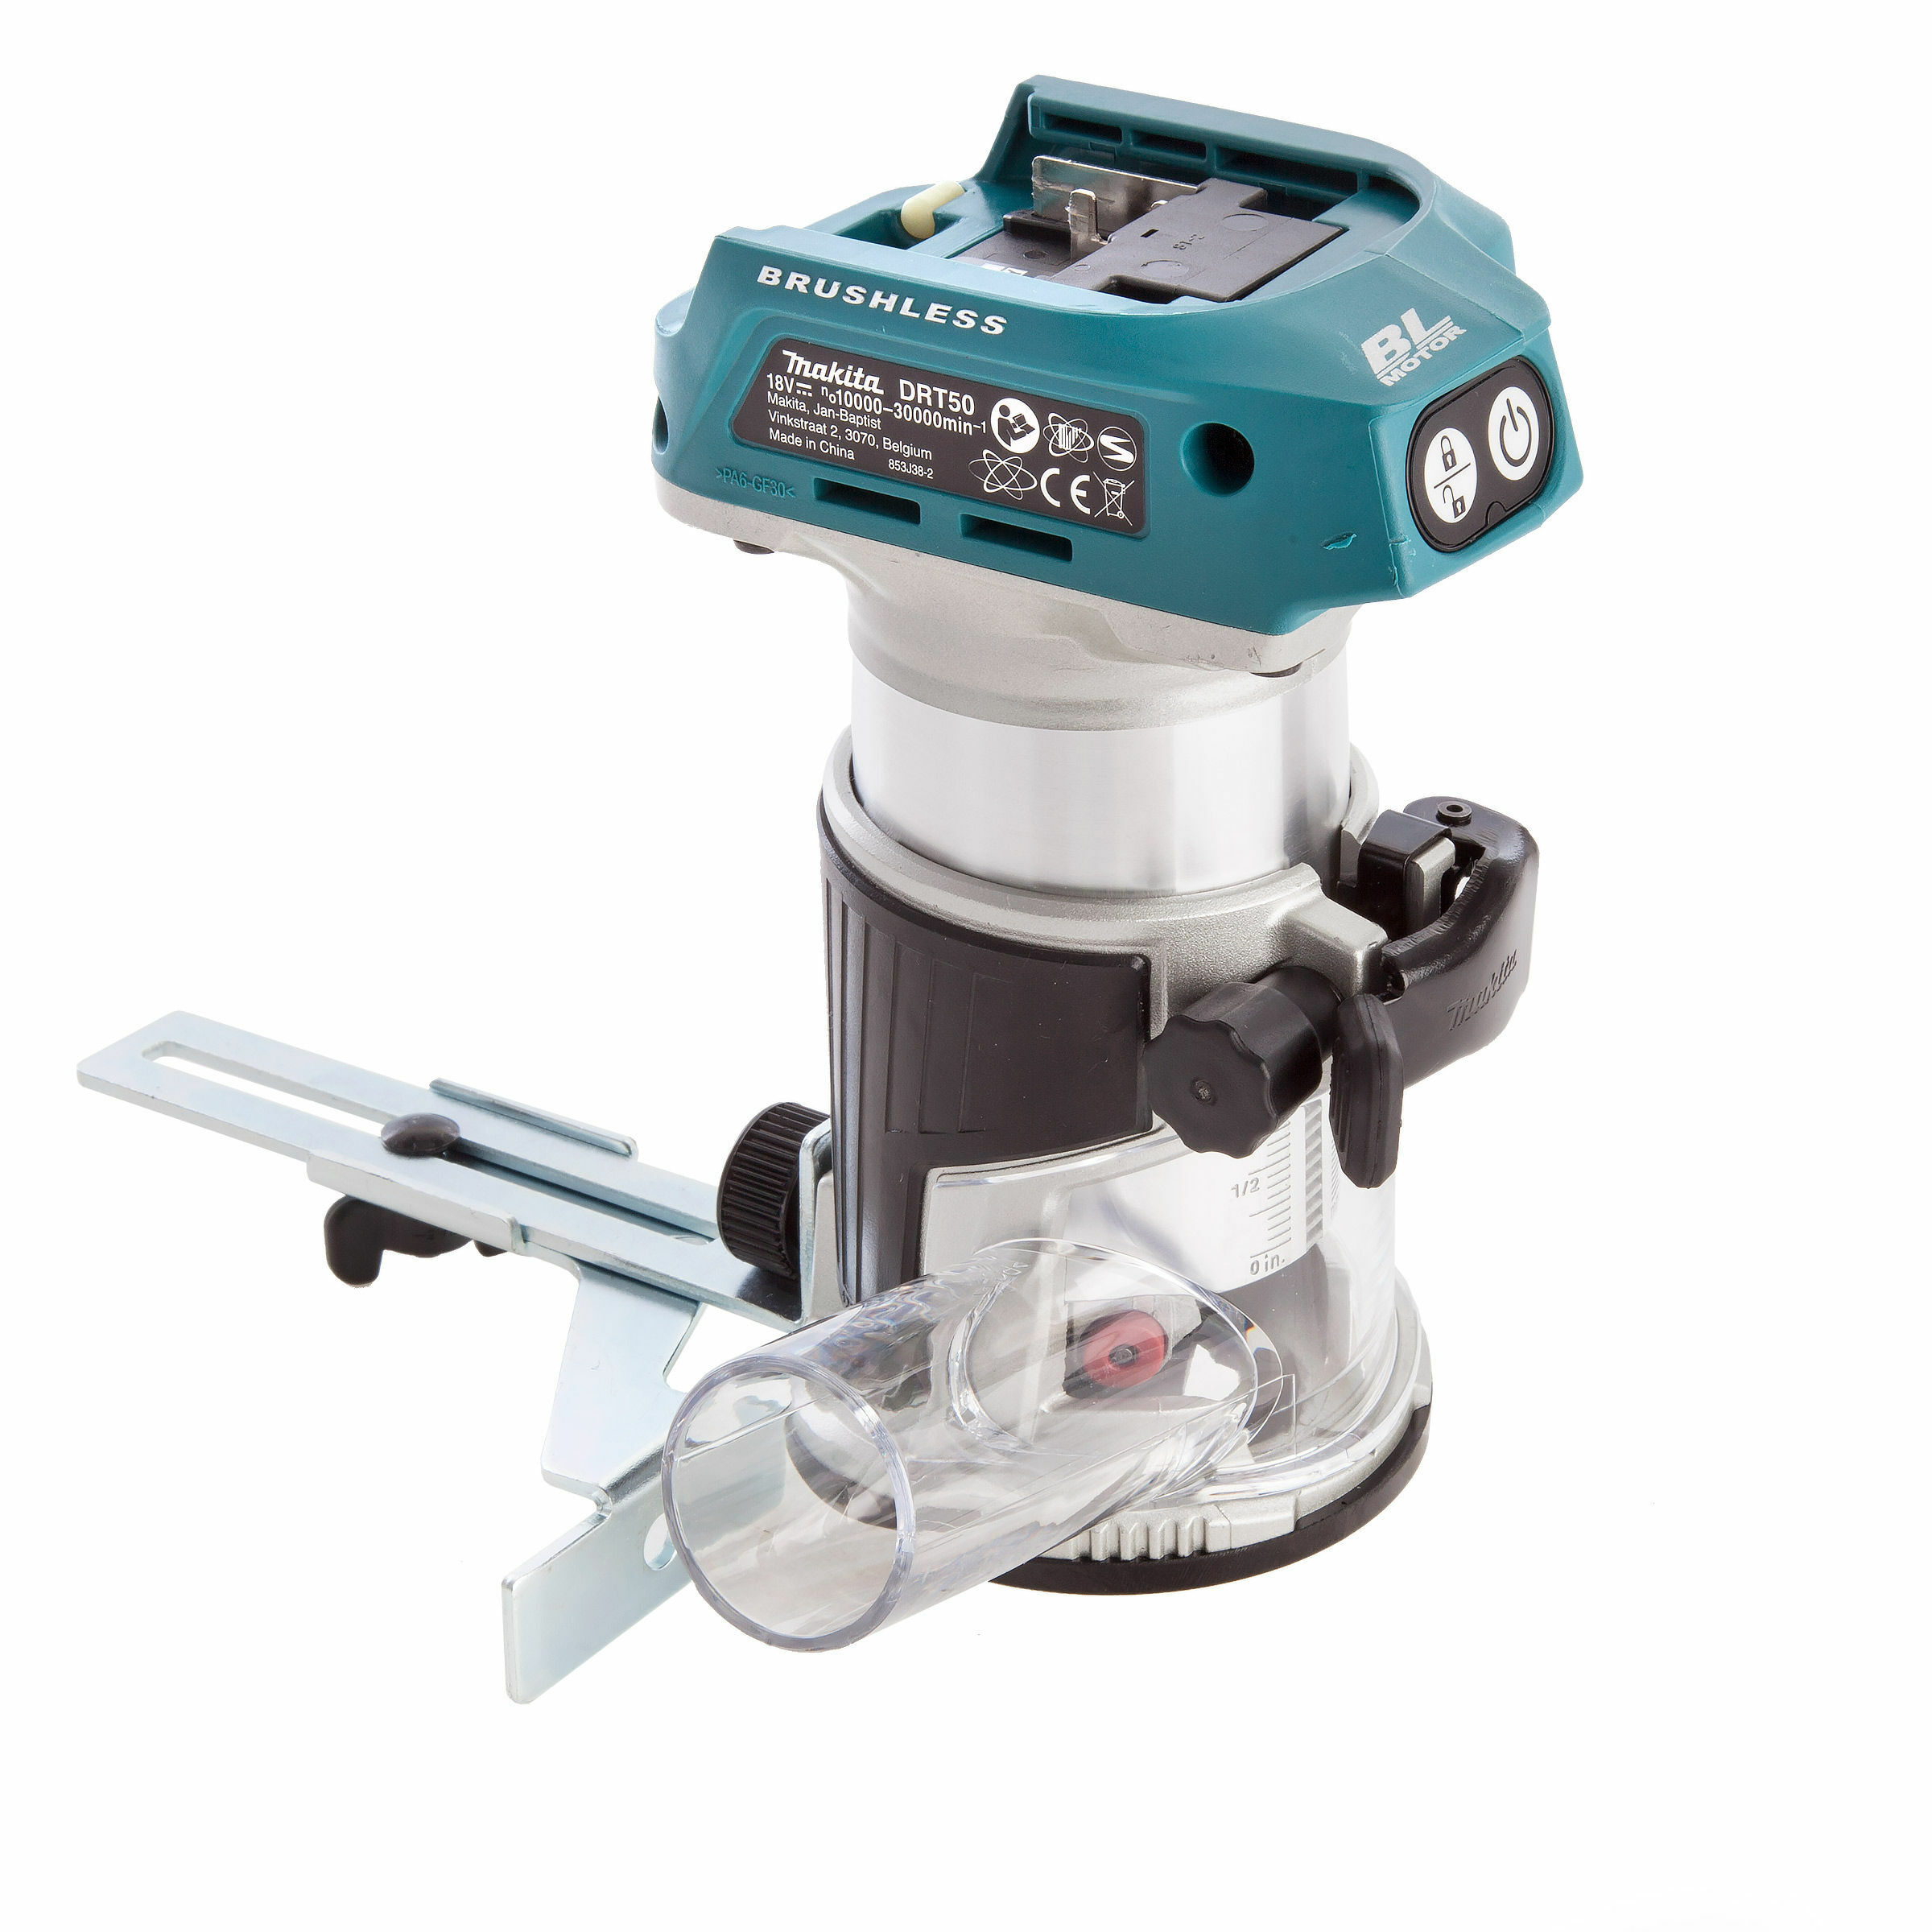 Makita 18v Brushless Router/trimmer Body In Makpac MAKDRT50ZJ | The Makita DRT50 18V LXT Brushless Router/Trimmer from ITS is a router that gives you the freedom of movement thanks to the popular 18V LXT battery. | toolforce.ie